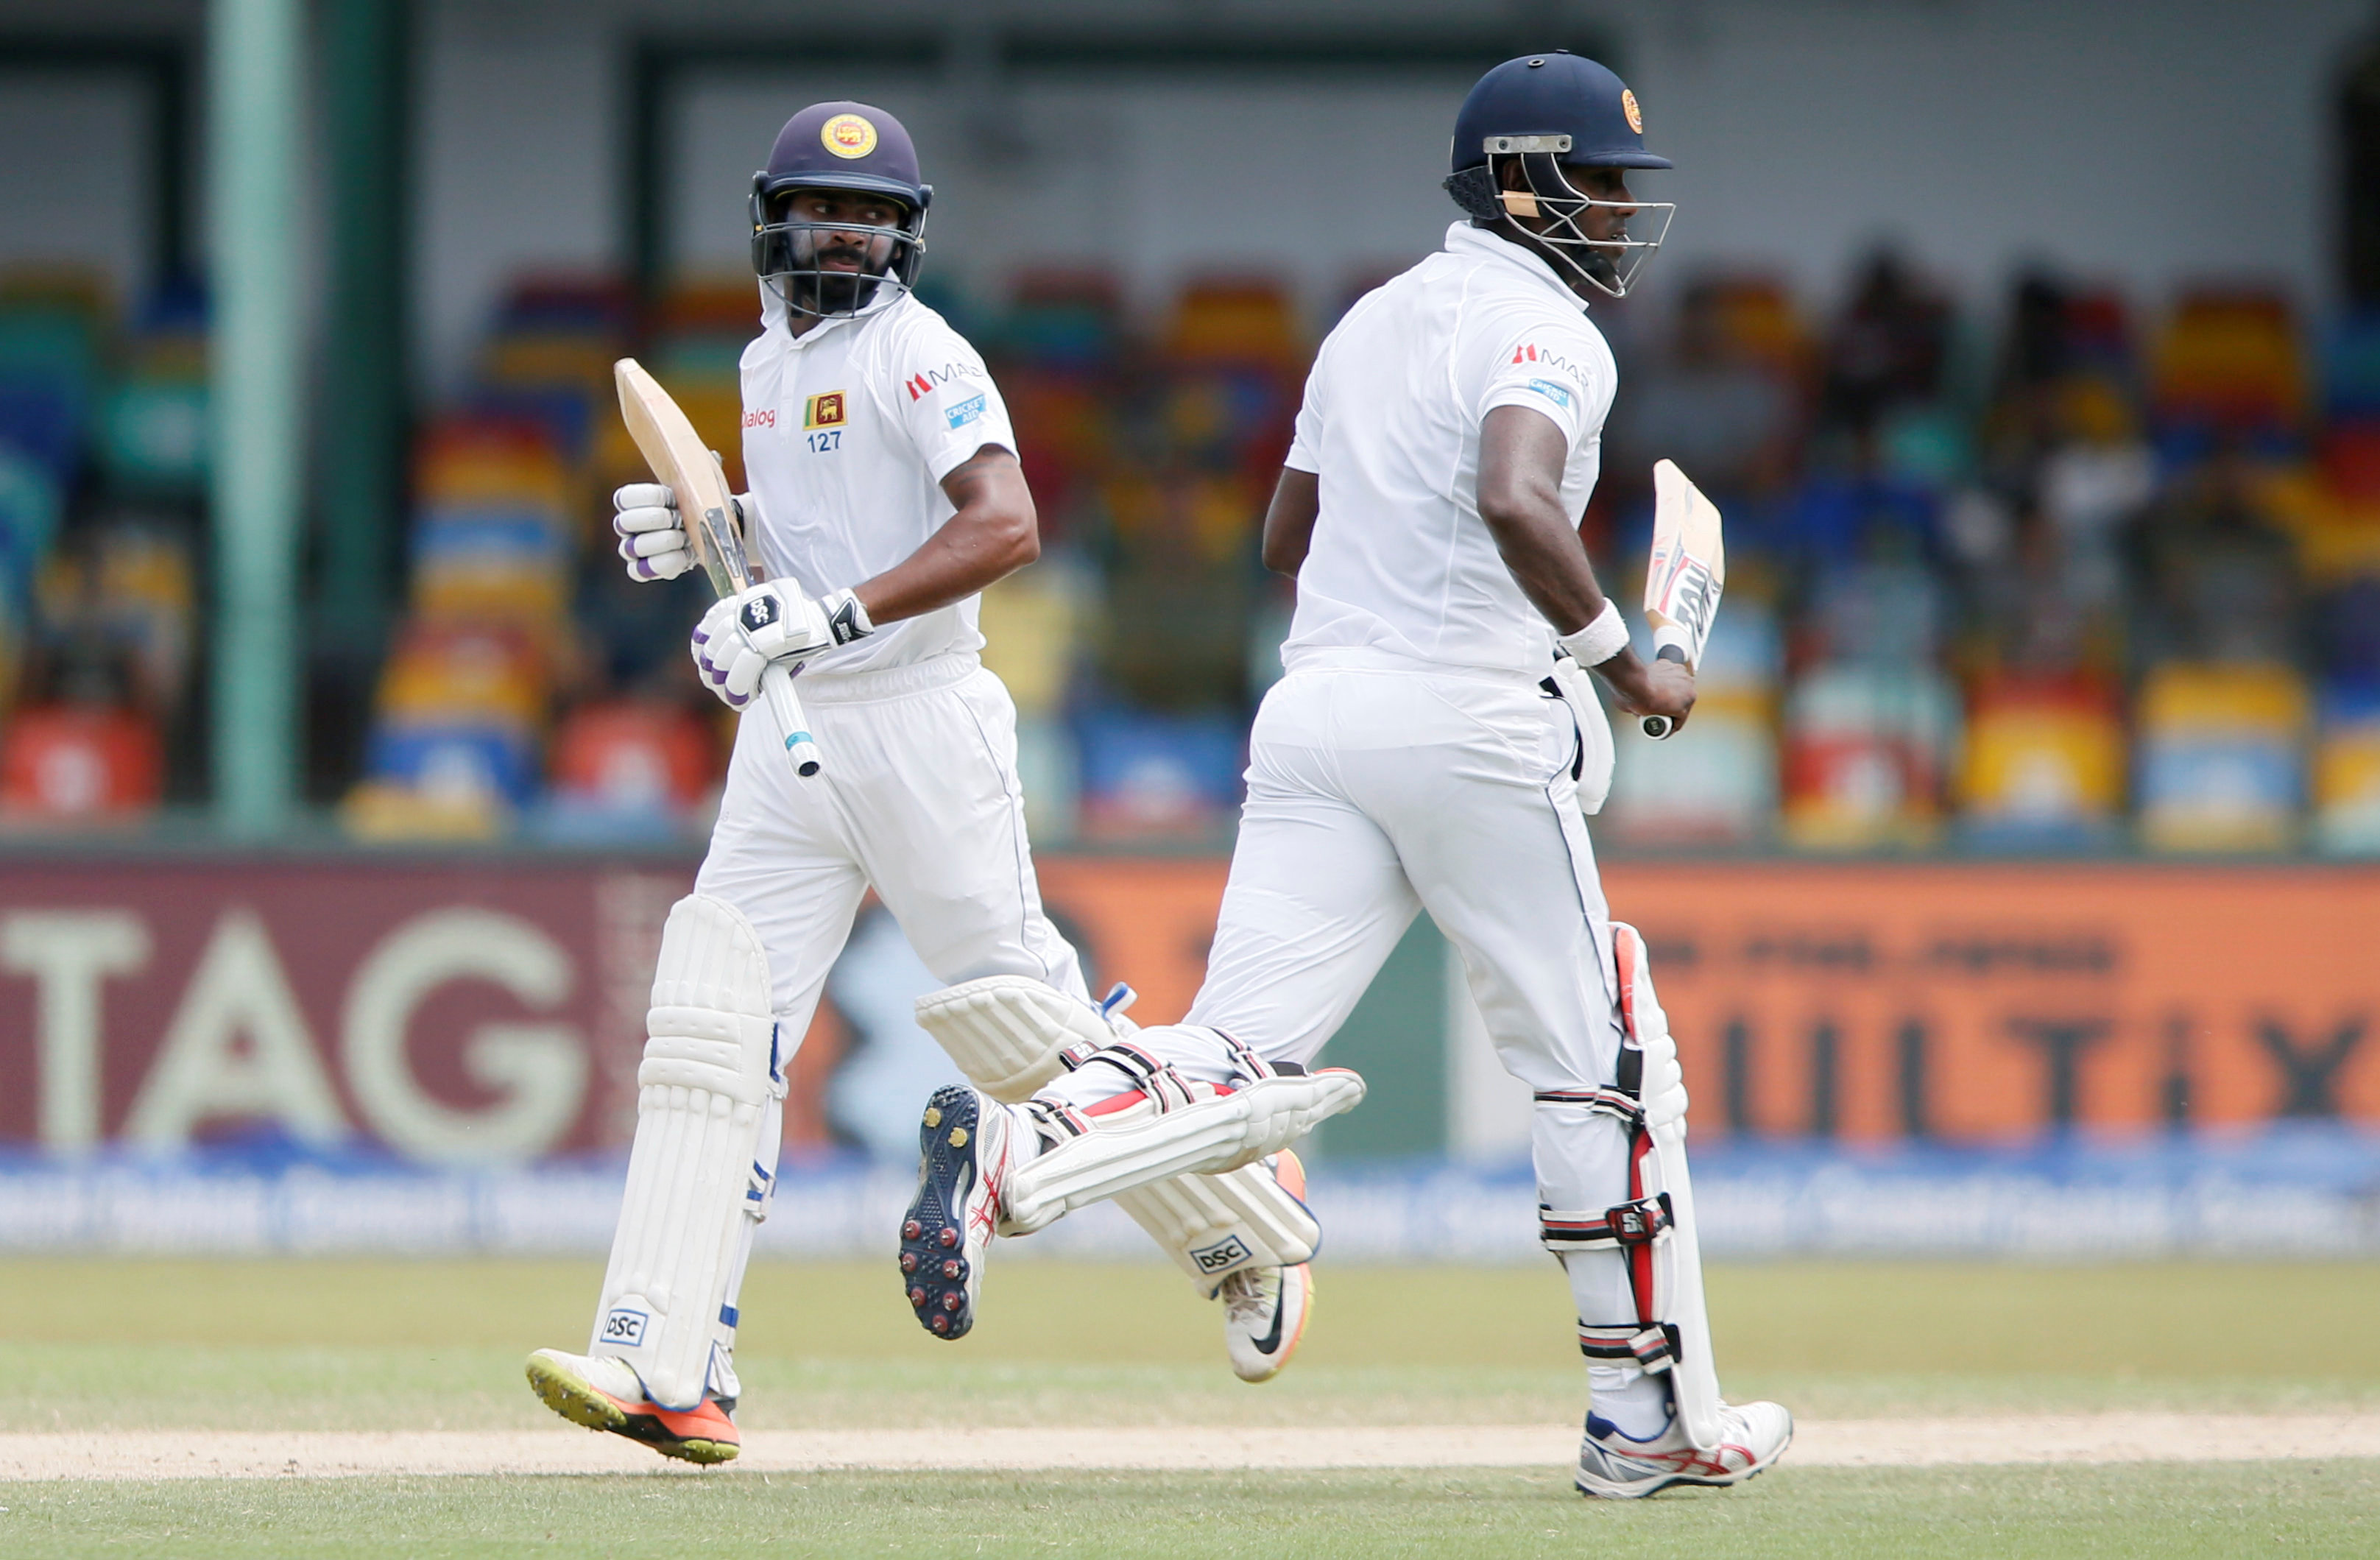 Cricket: Sweep was the best option against India's spinners, says Dickwella